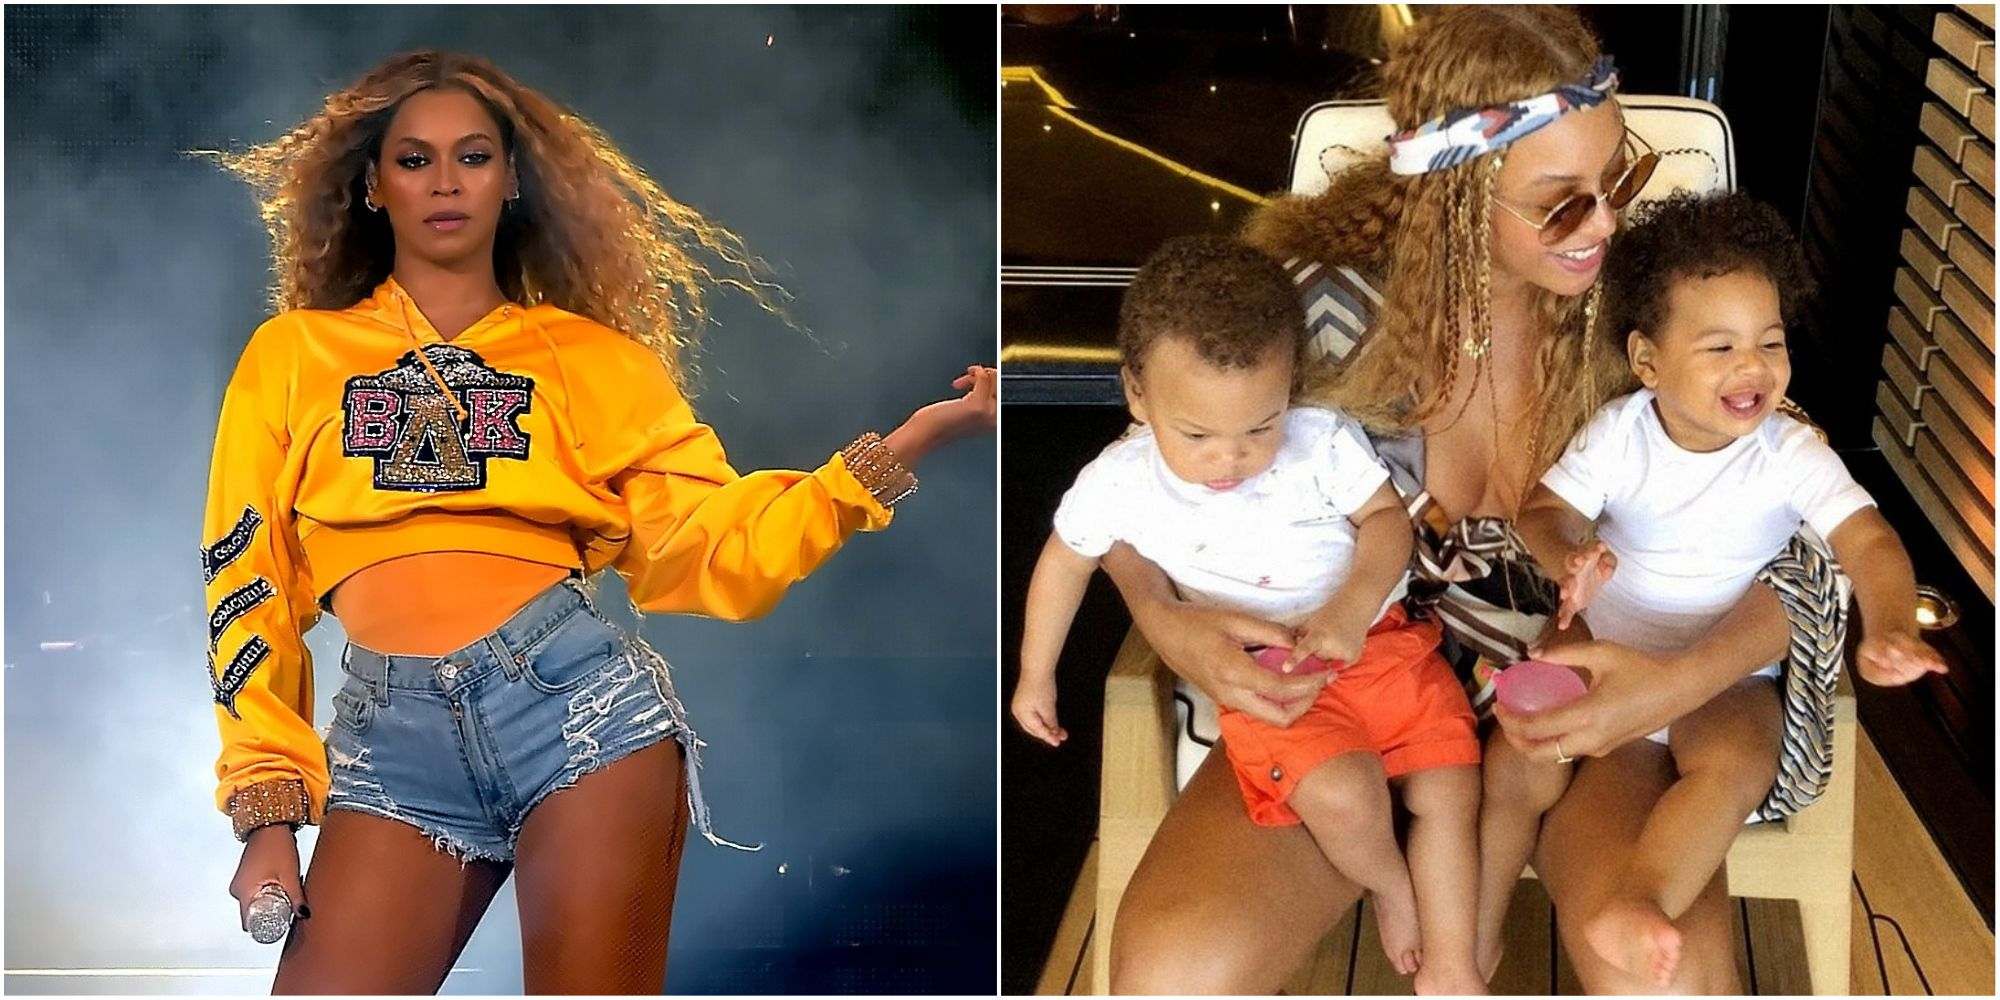 Beyoncé's Twins Look Adorable Laughing In Behind-The-Scenes Video Of Photoshoot